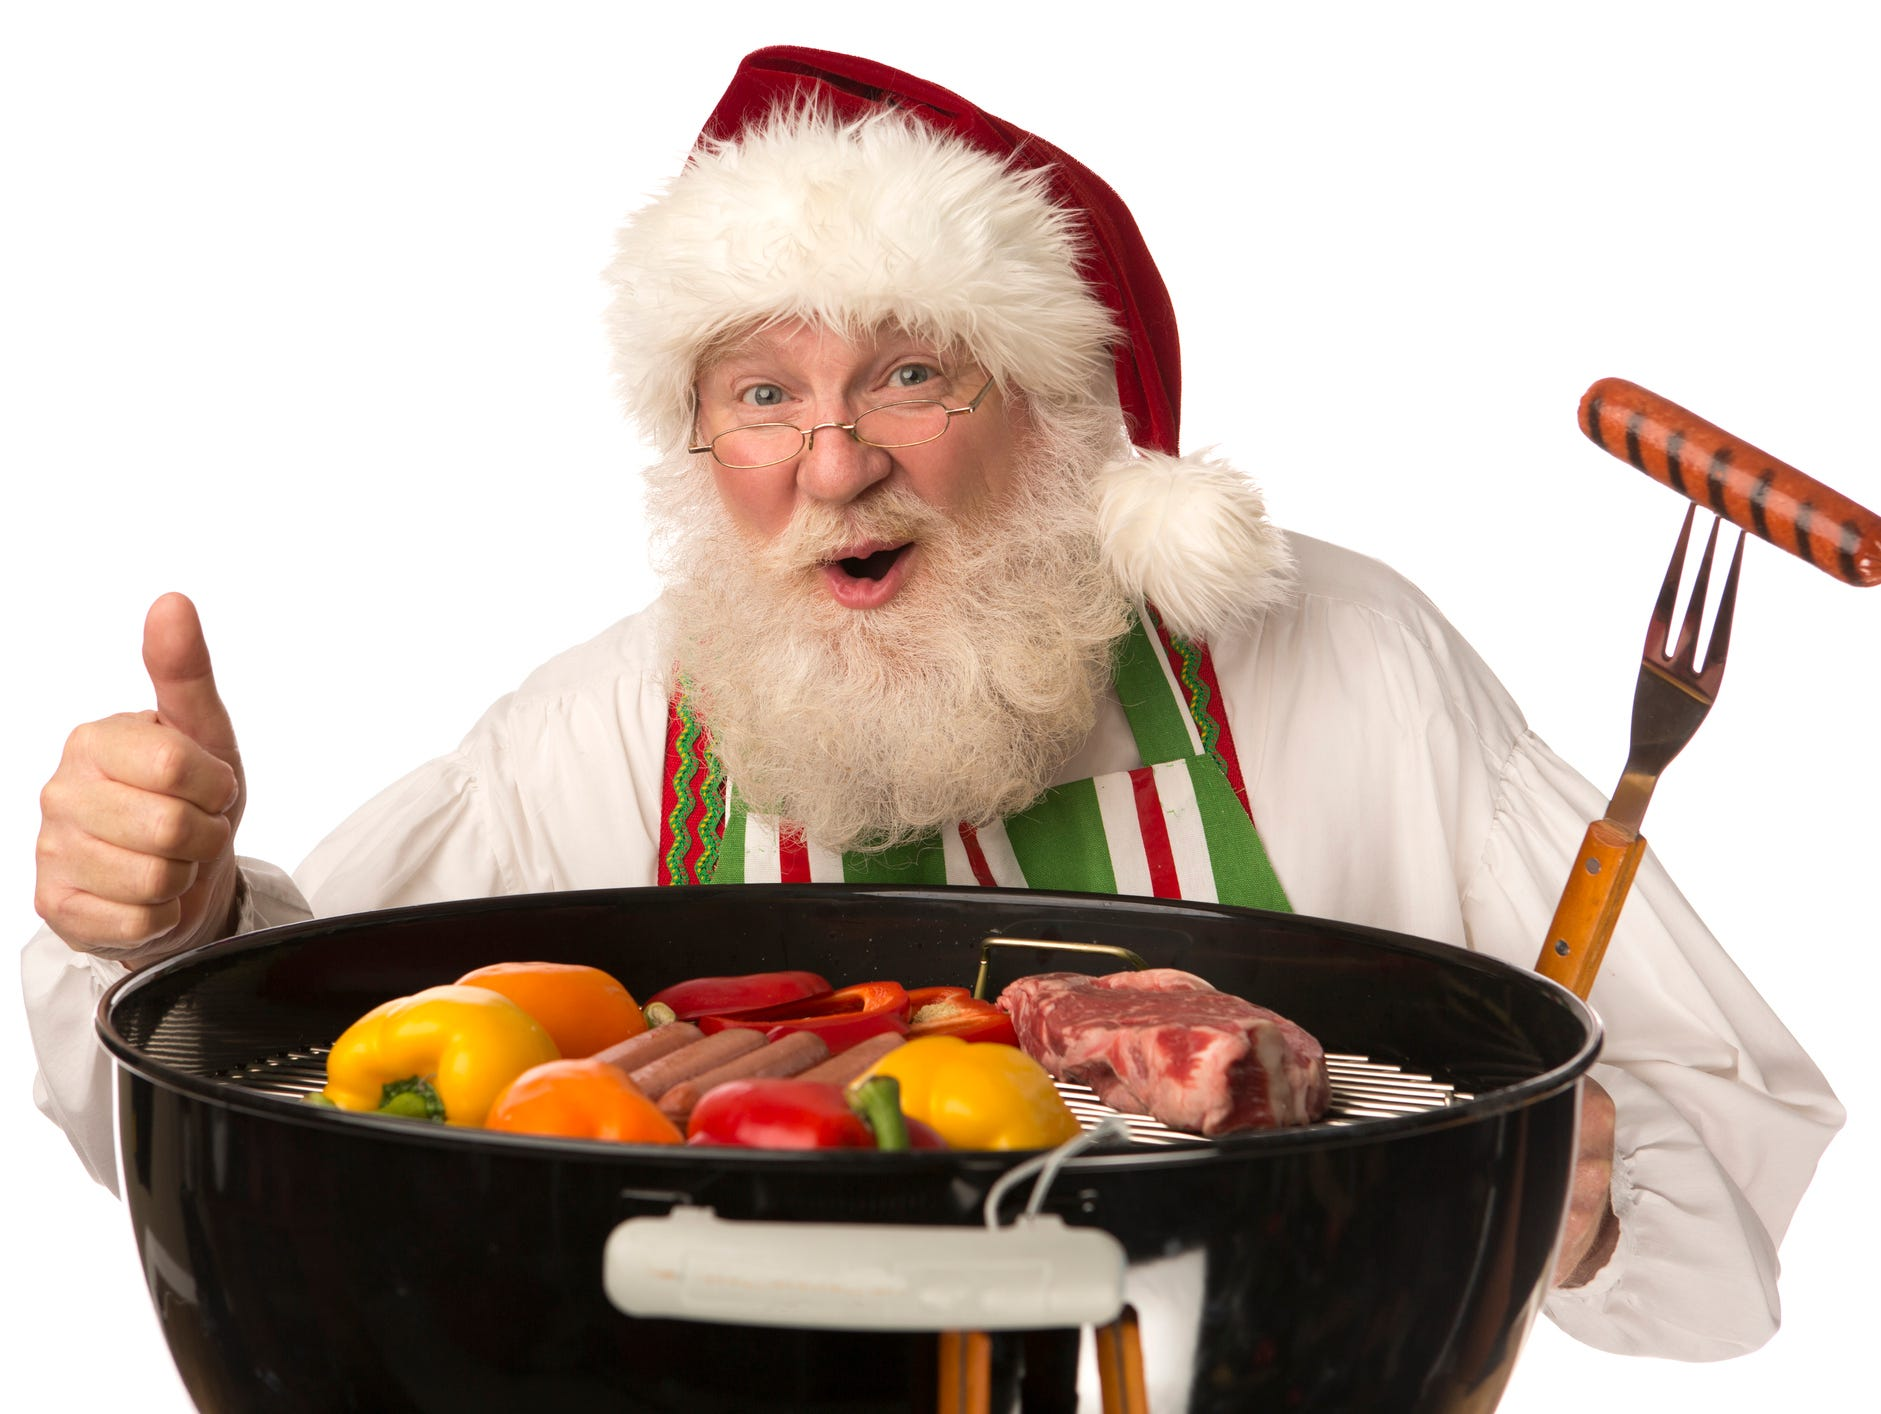 Ho-ho-HOT on the grill! Enter to win $200 to Omaha Steaks this Christmas in July.